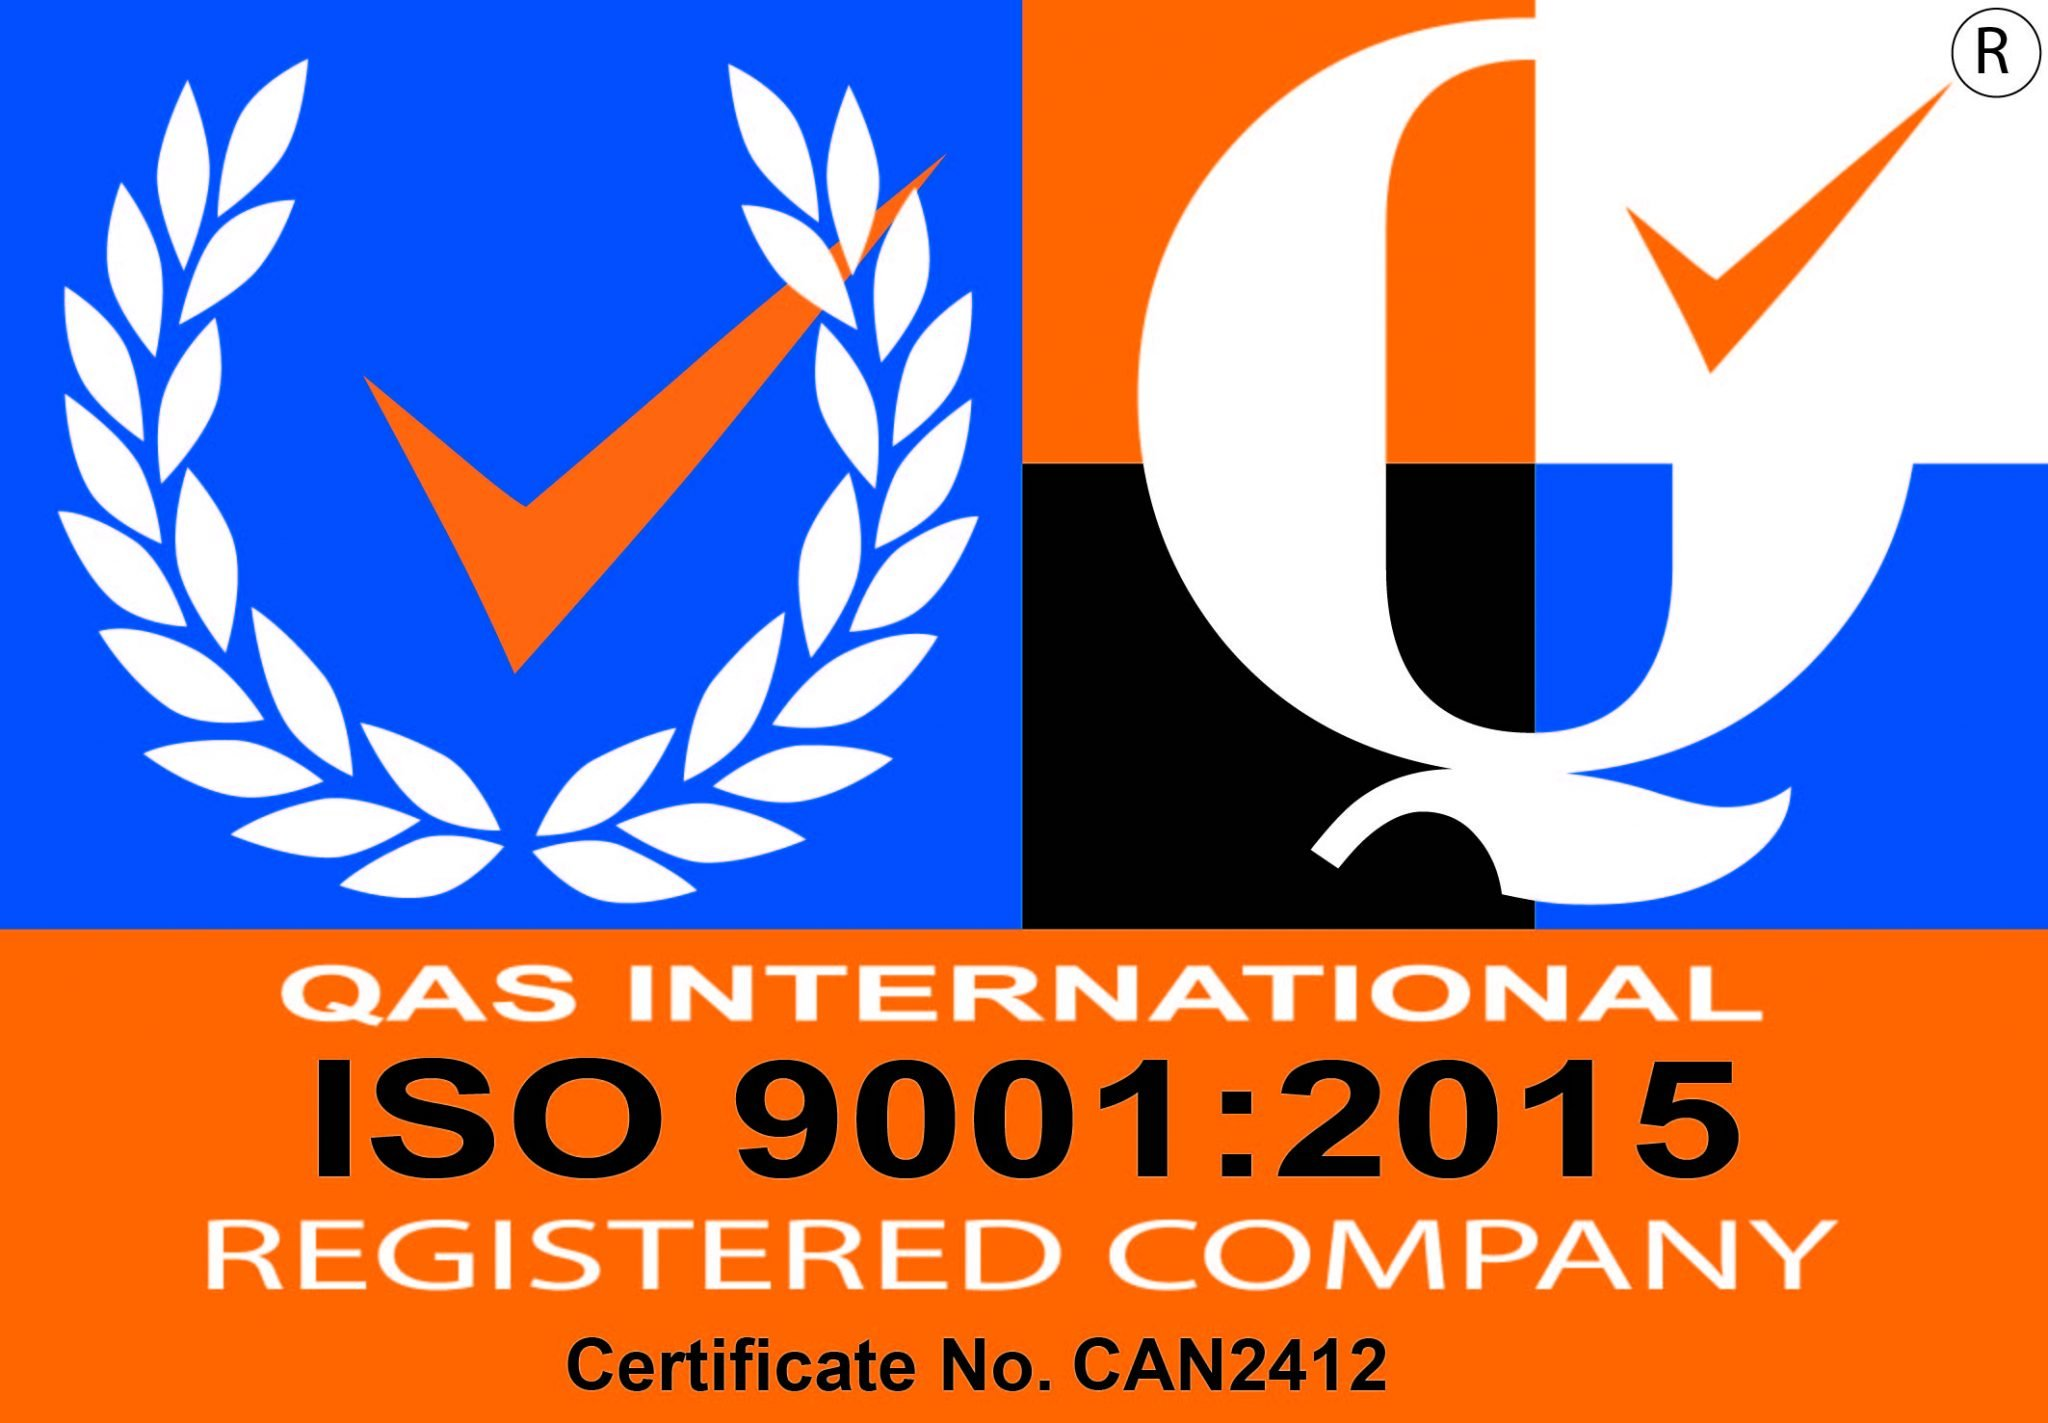 Importance of ISO 9001:2015 at TCI